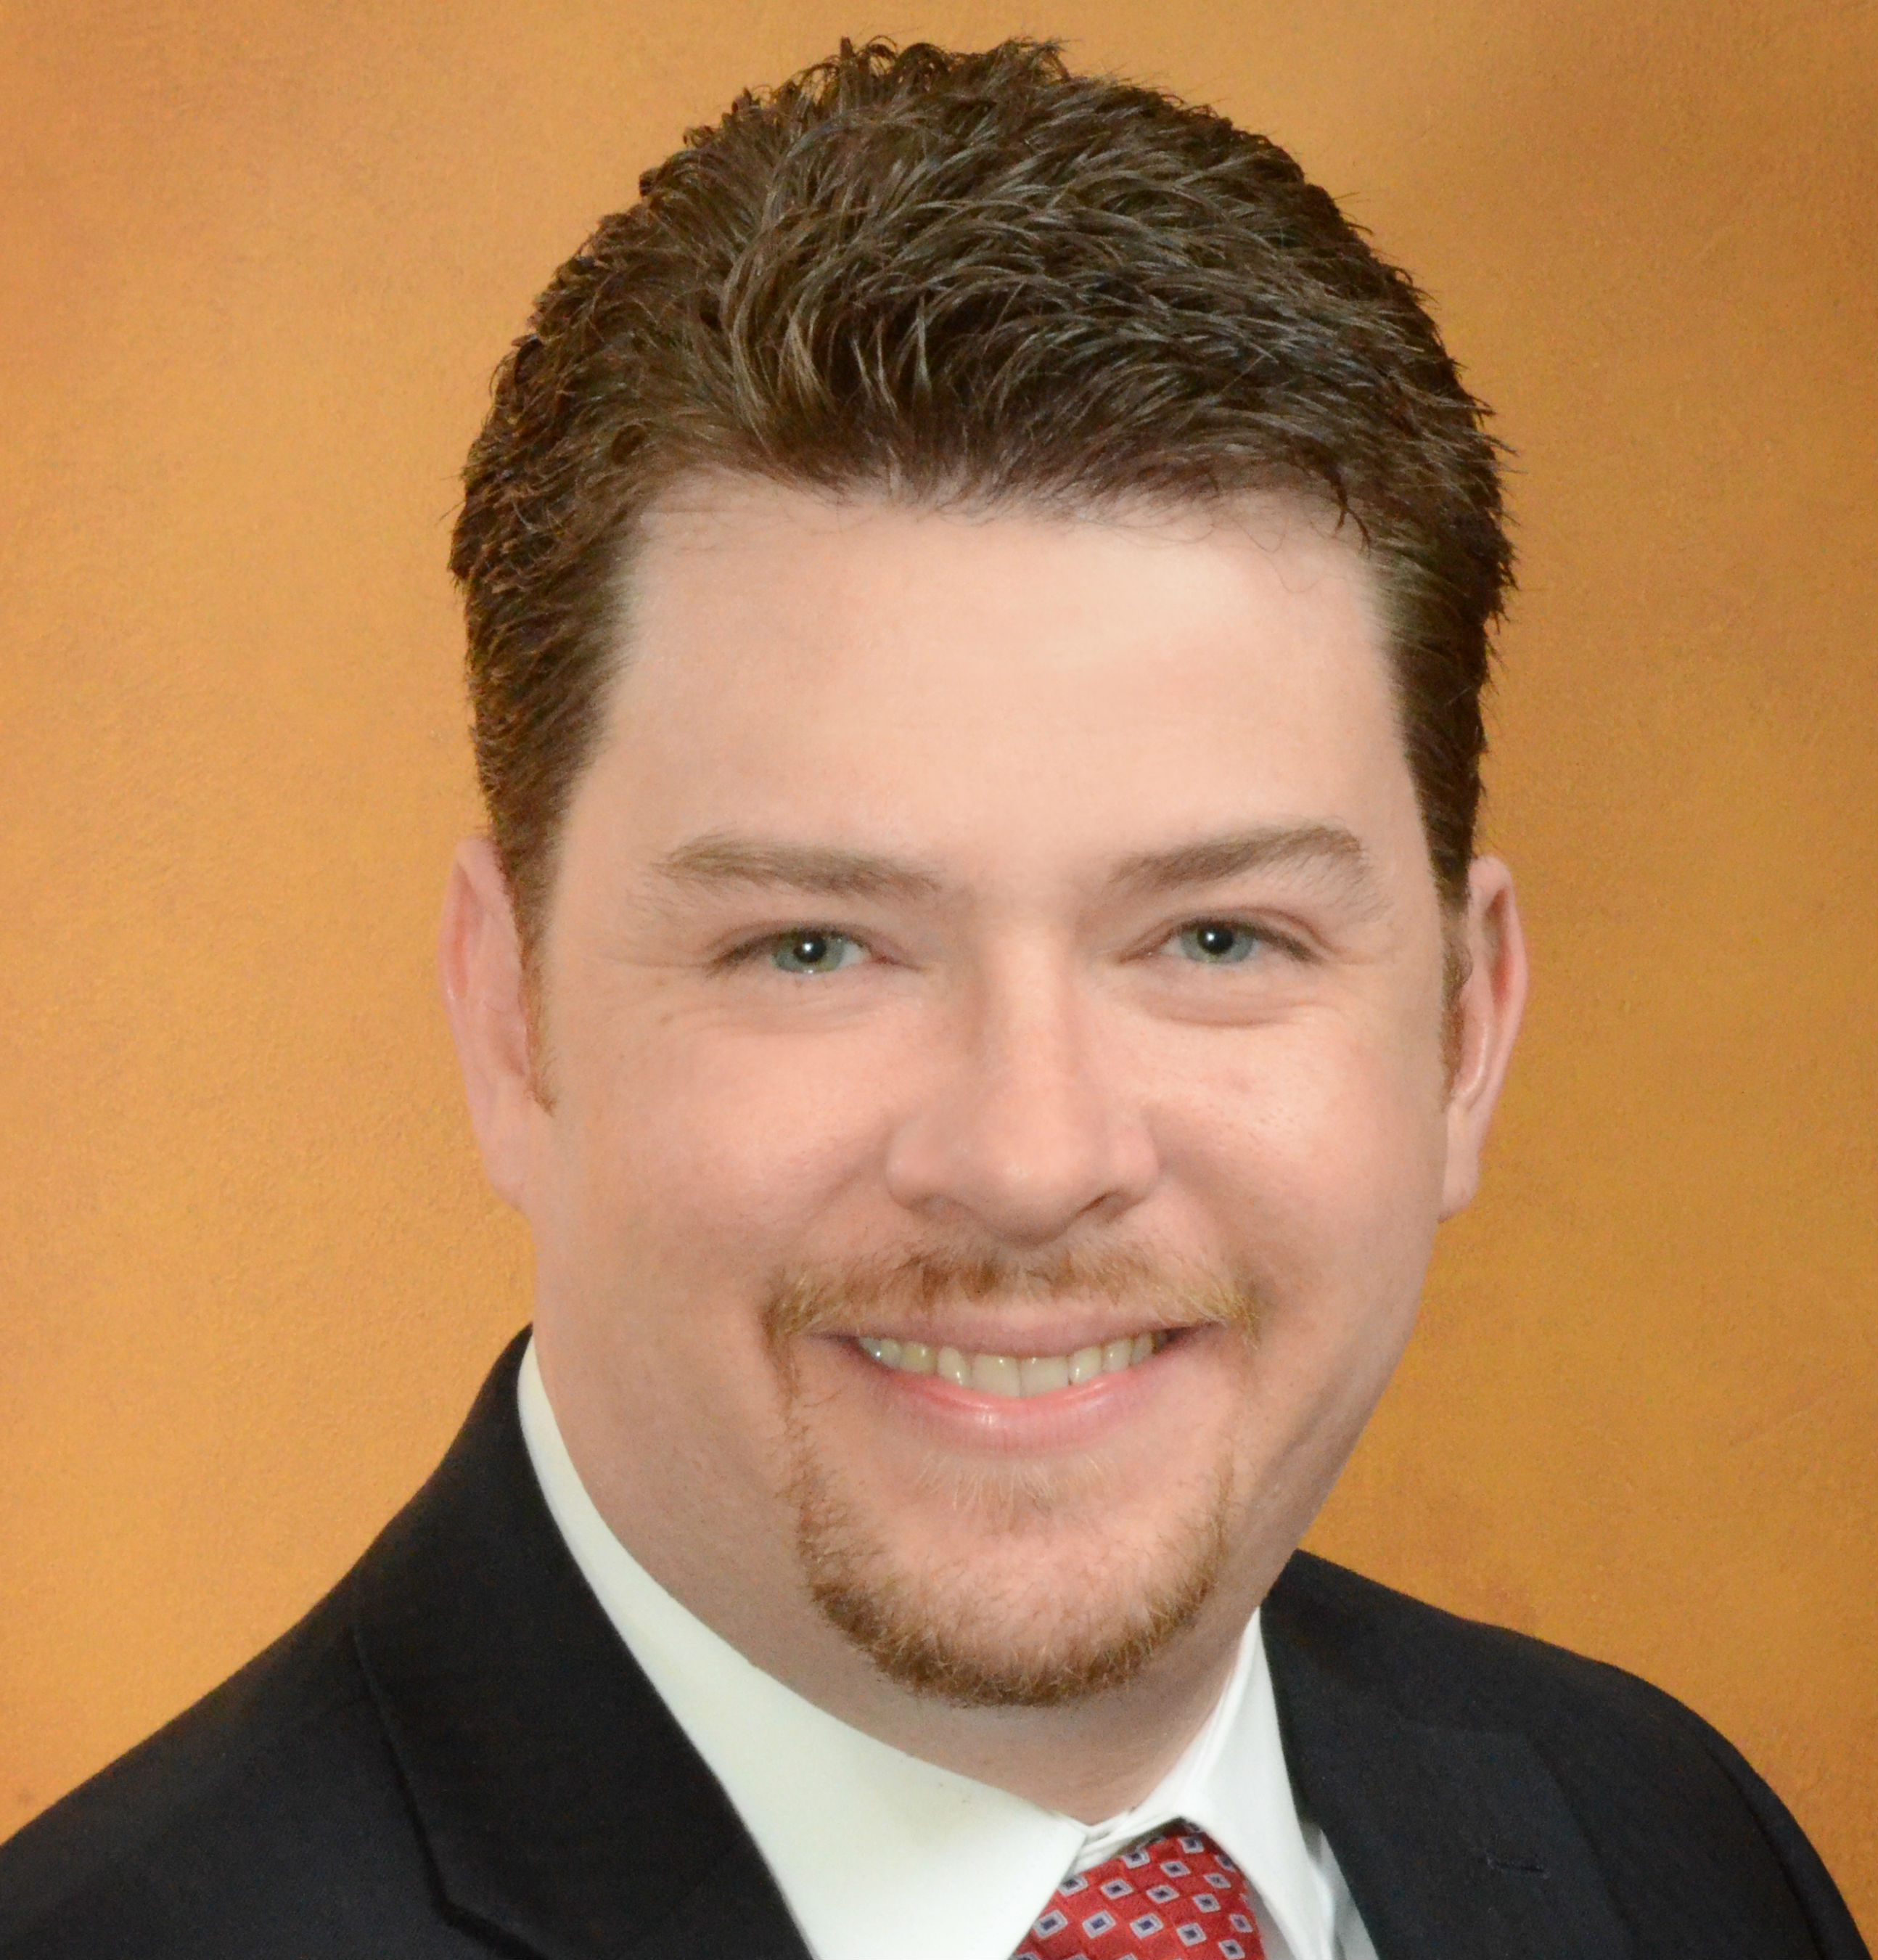 Chris Rondinelli, financial advisor Carnegie PA